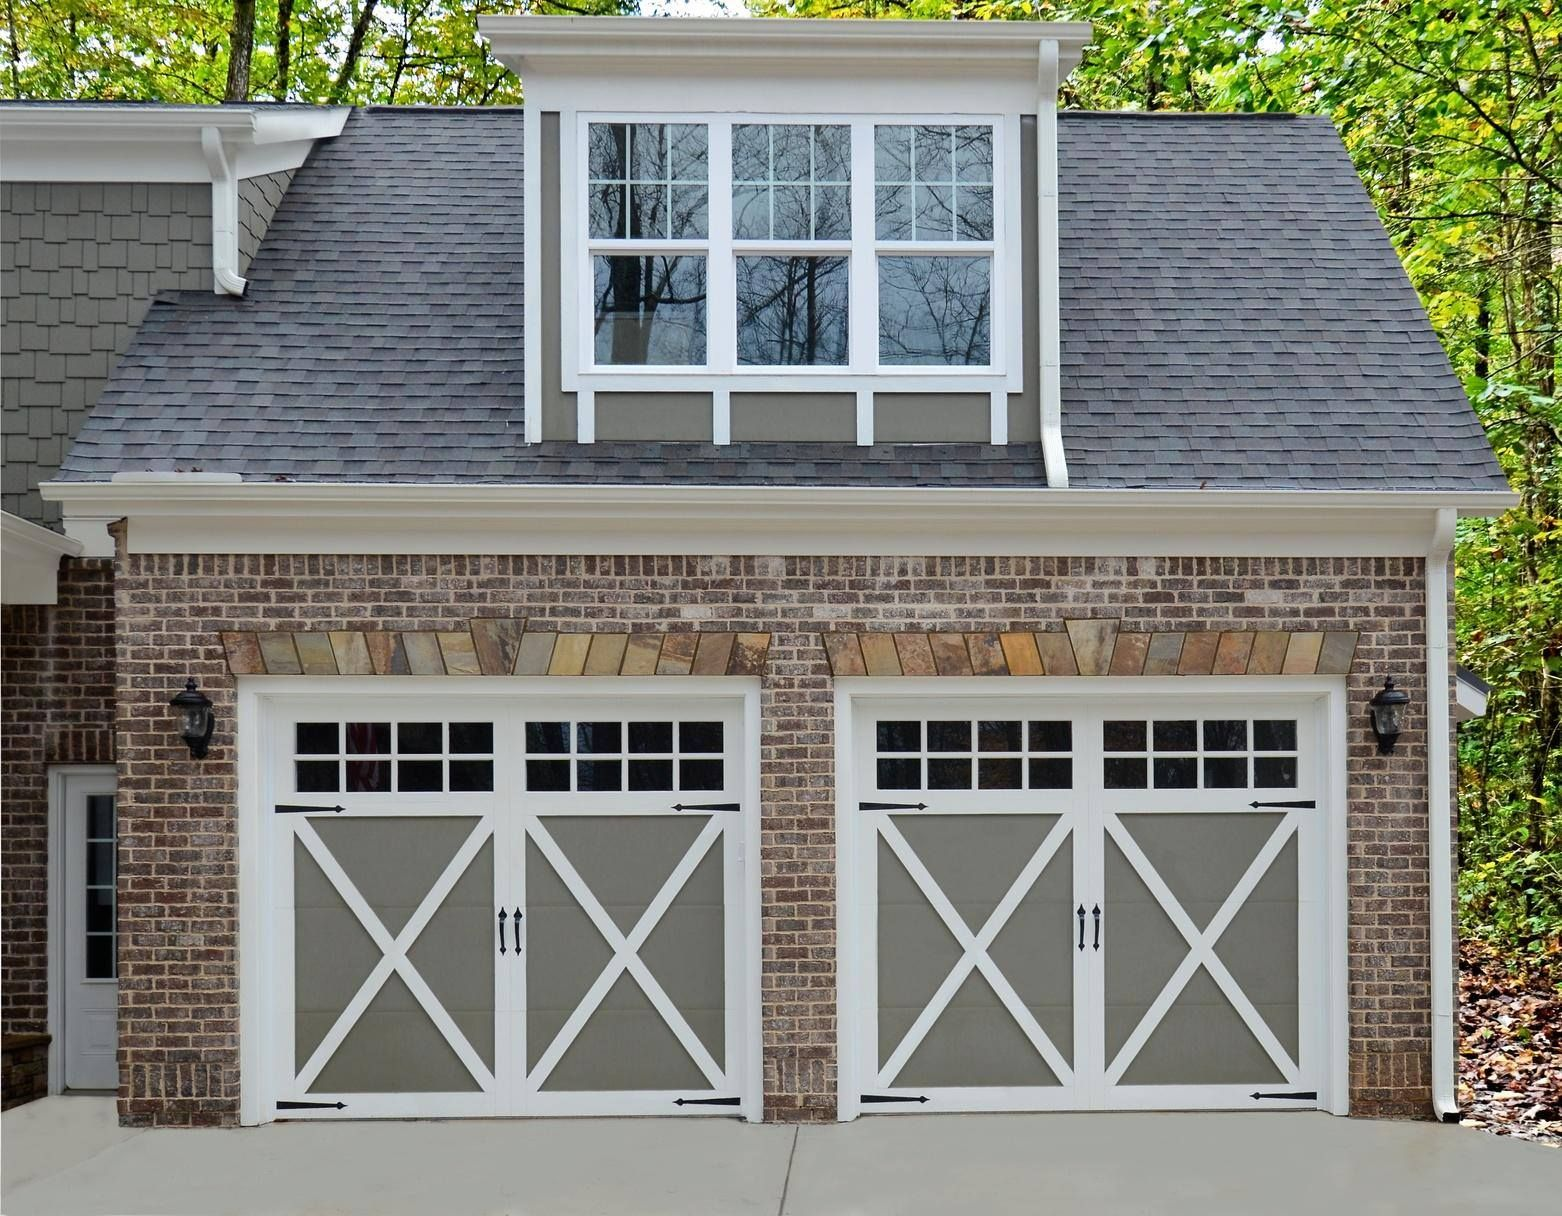 More Ideas Below Modern Garage Doors Opener Makeover DIY Repair Art Farmhouse Carriage Craftsman With Windows